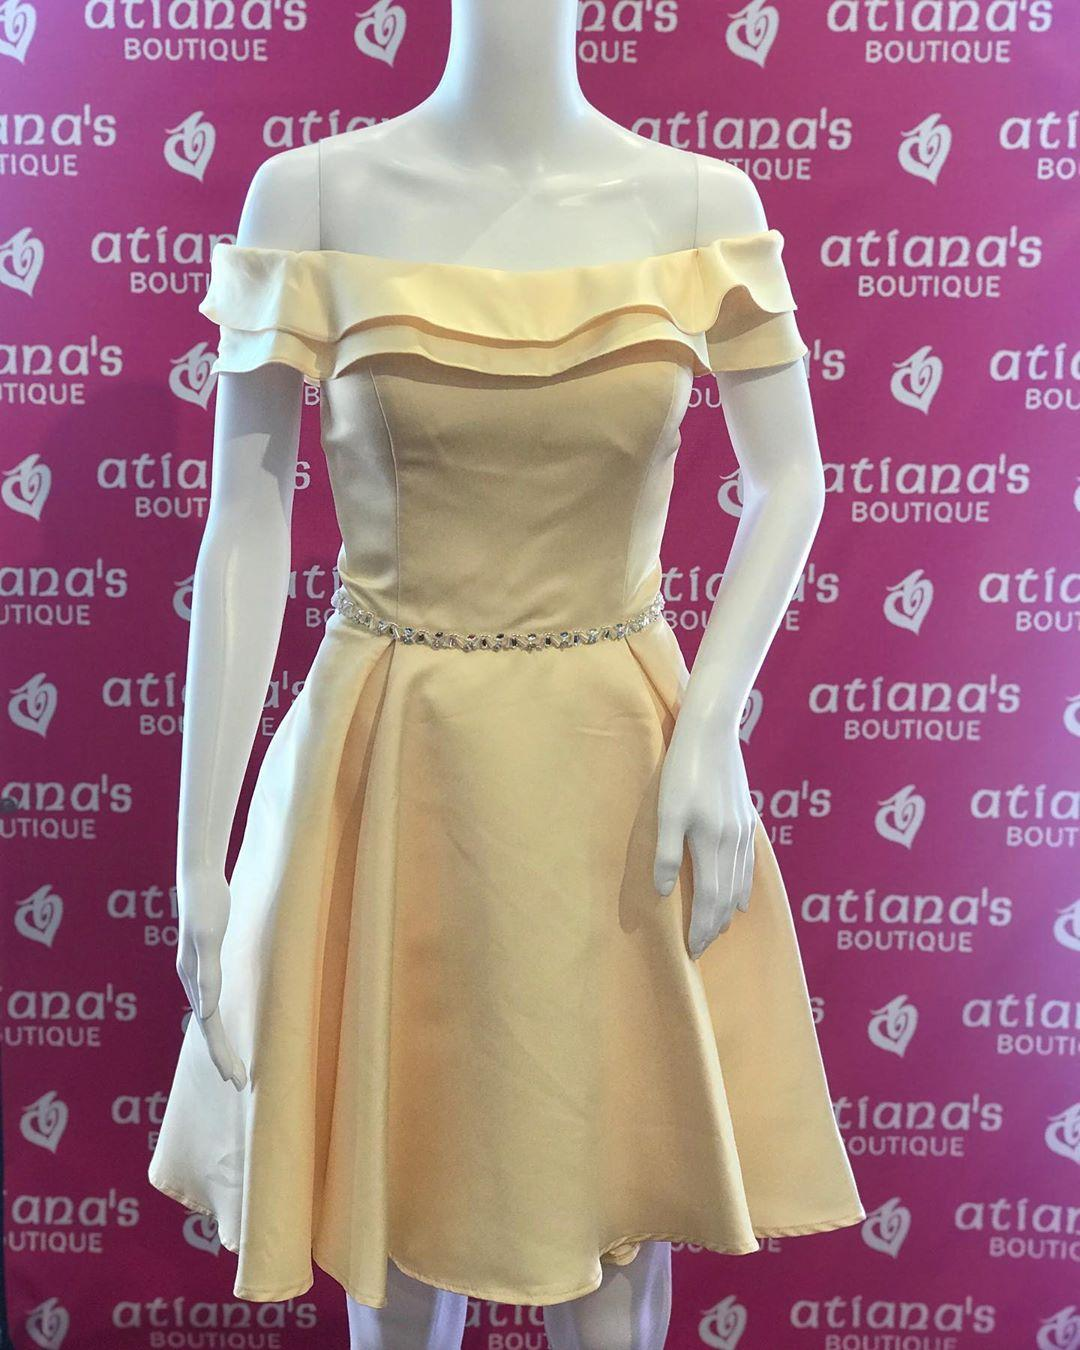 Hot Sale Yellow Off Shoulder Short Homecoming Prom Dress 2020 Beaded Ribbon Satin with Sleeves Mini Formal Party Graduation Cocktail Dress